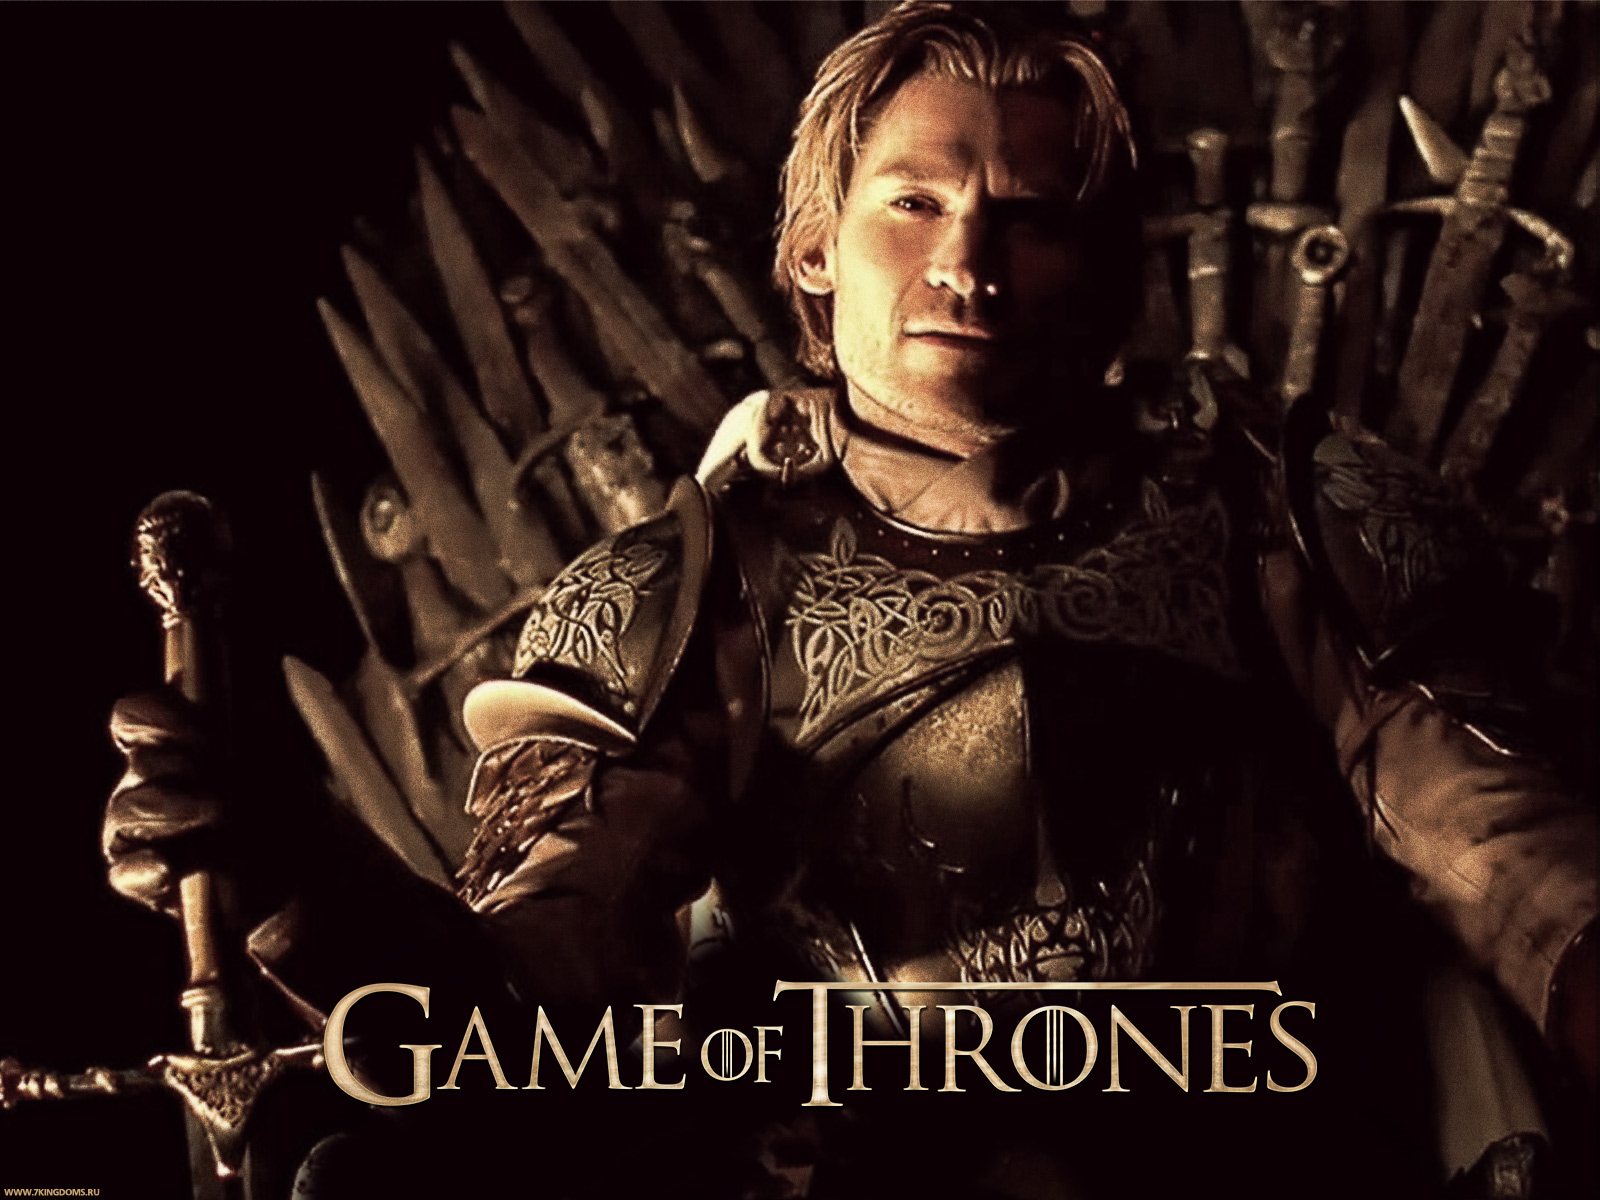 Jaime-Lannister-game-of-thrones-21745930-1600-1200